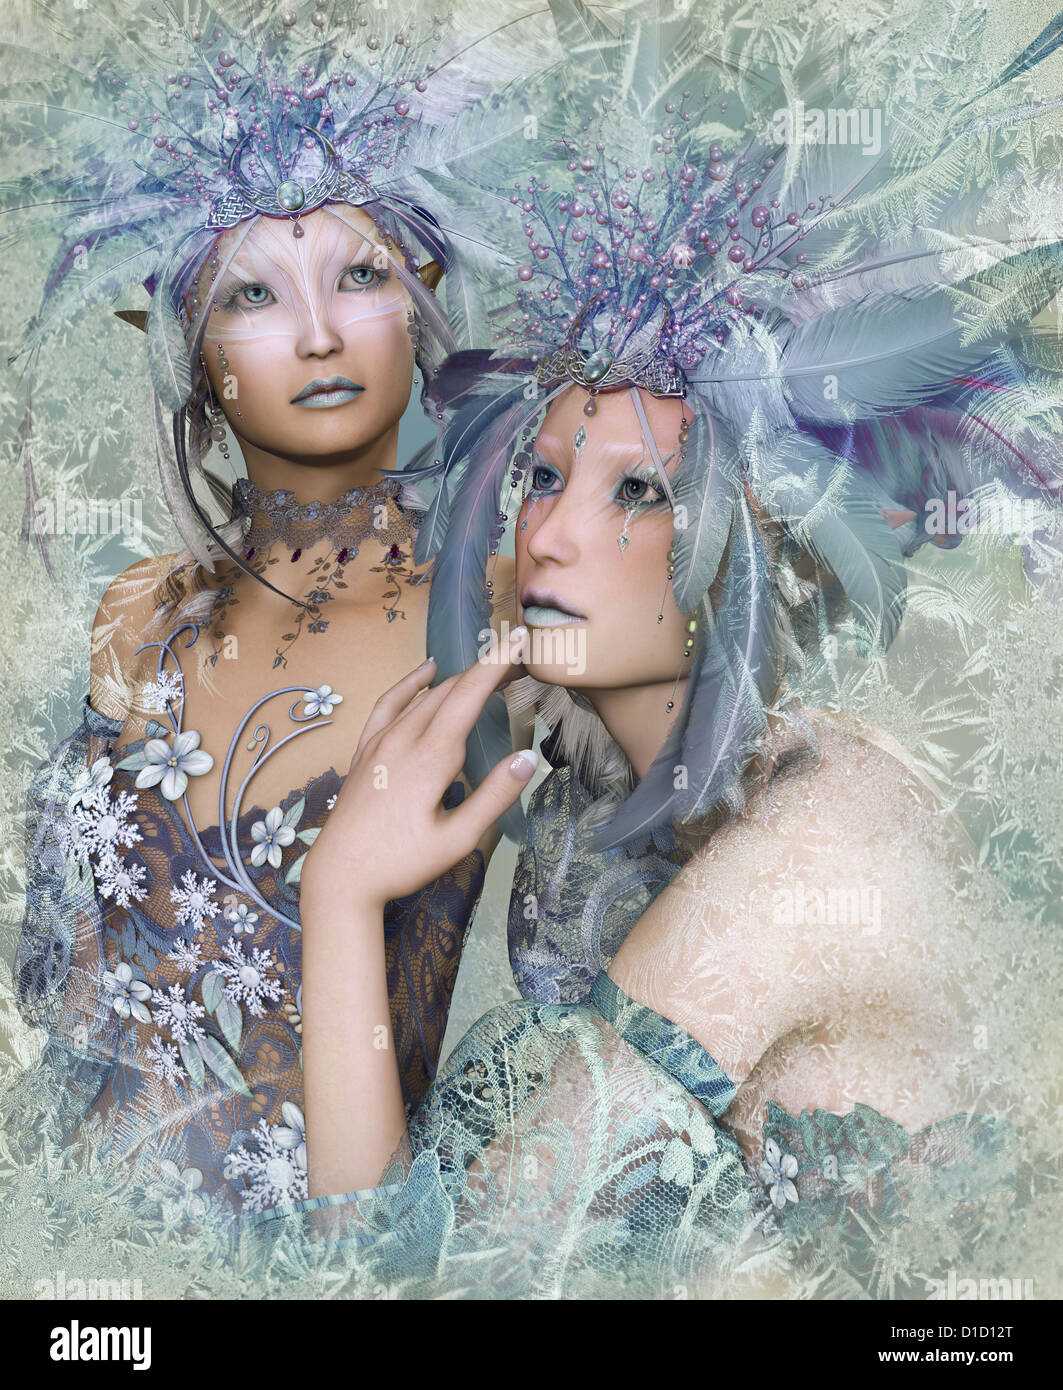 a portrait of two winter-elves with feather crowns - Stock Image